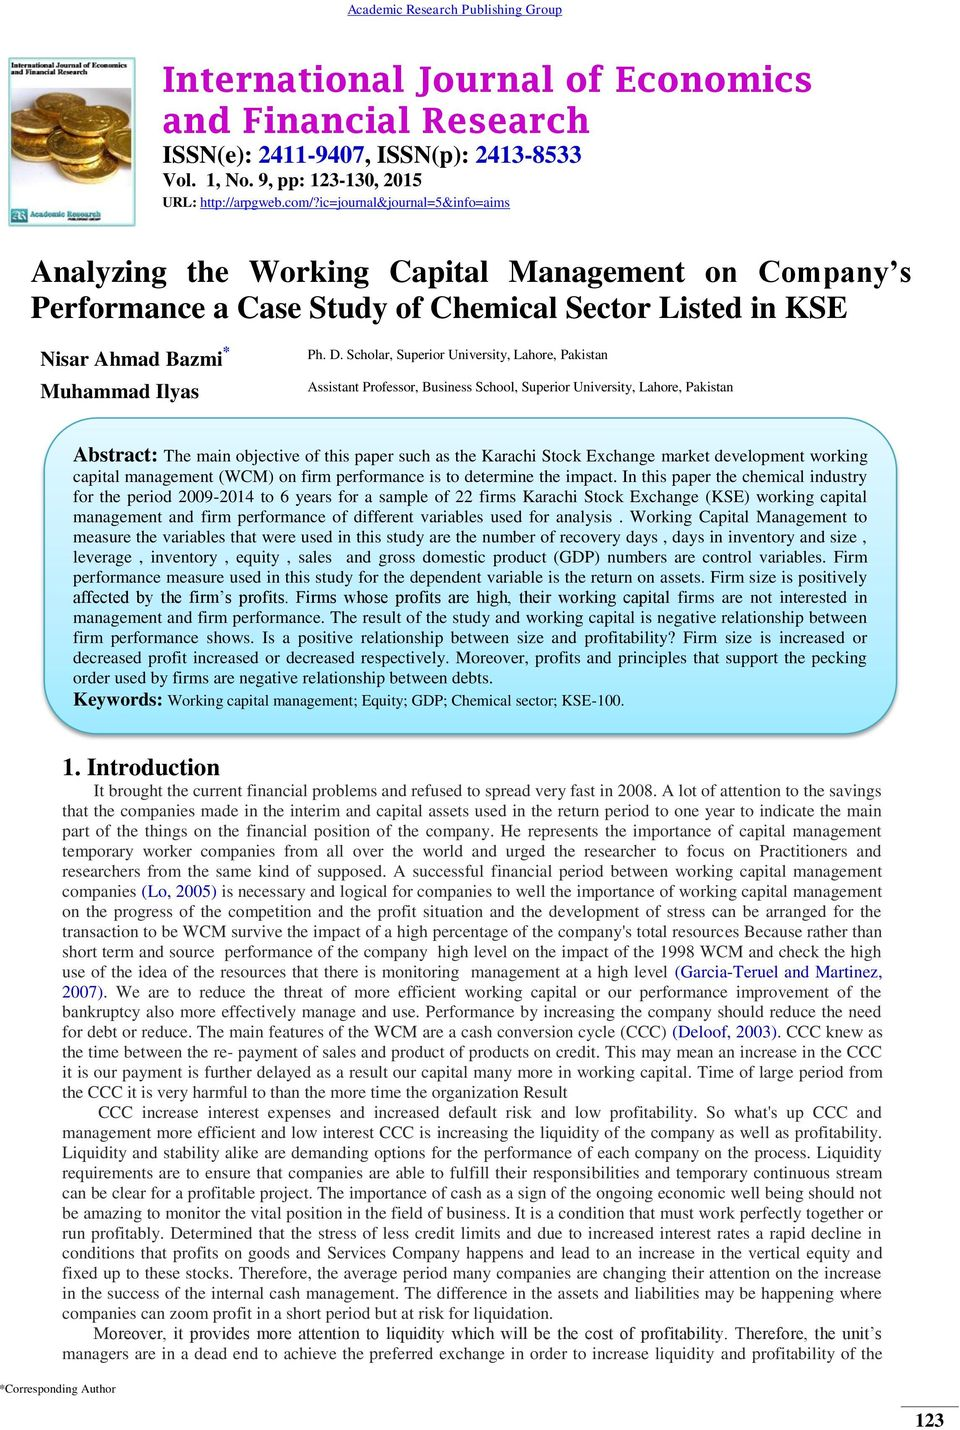 effect of wcm on firm profitability in pakistan textiles Shahid (2011) explores the effect of working capital management and profitability of textile sector in pakistan his study covers the periods of 6 years from 2000-06 of 160 textile firms for this purpose.